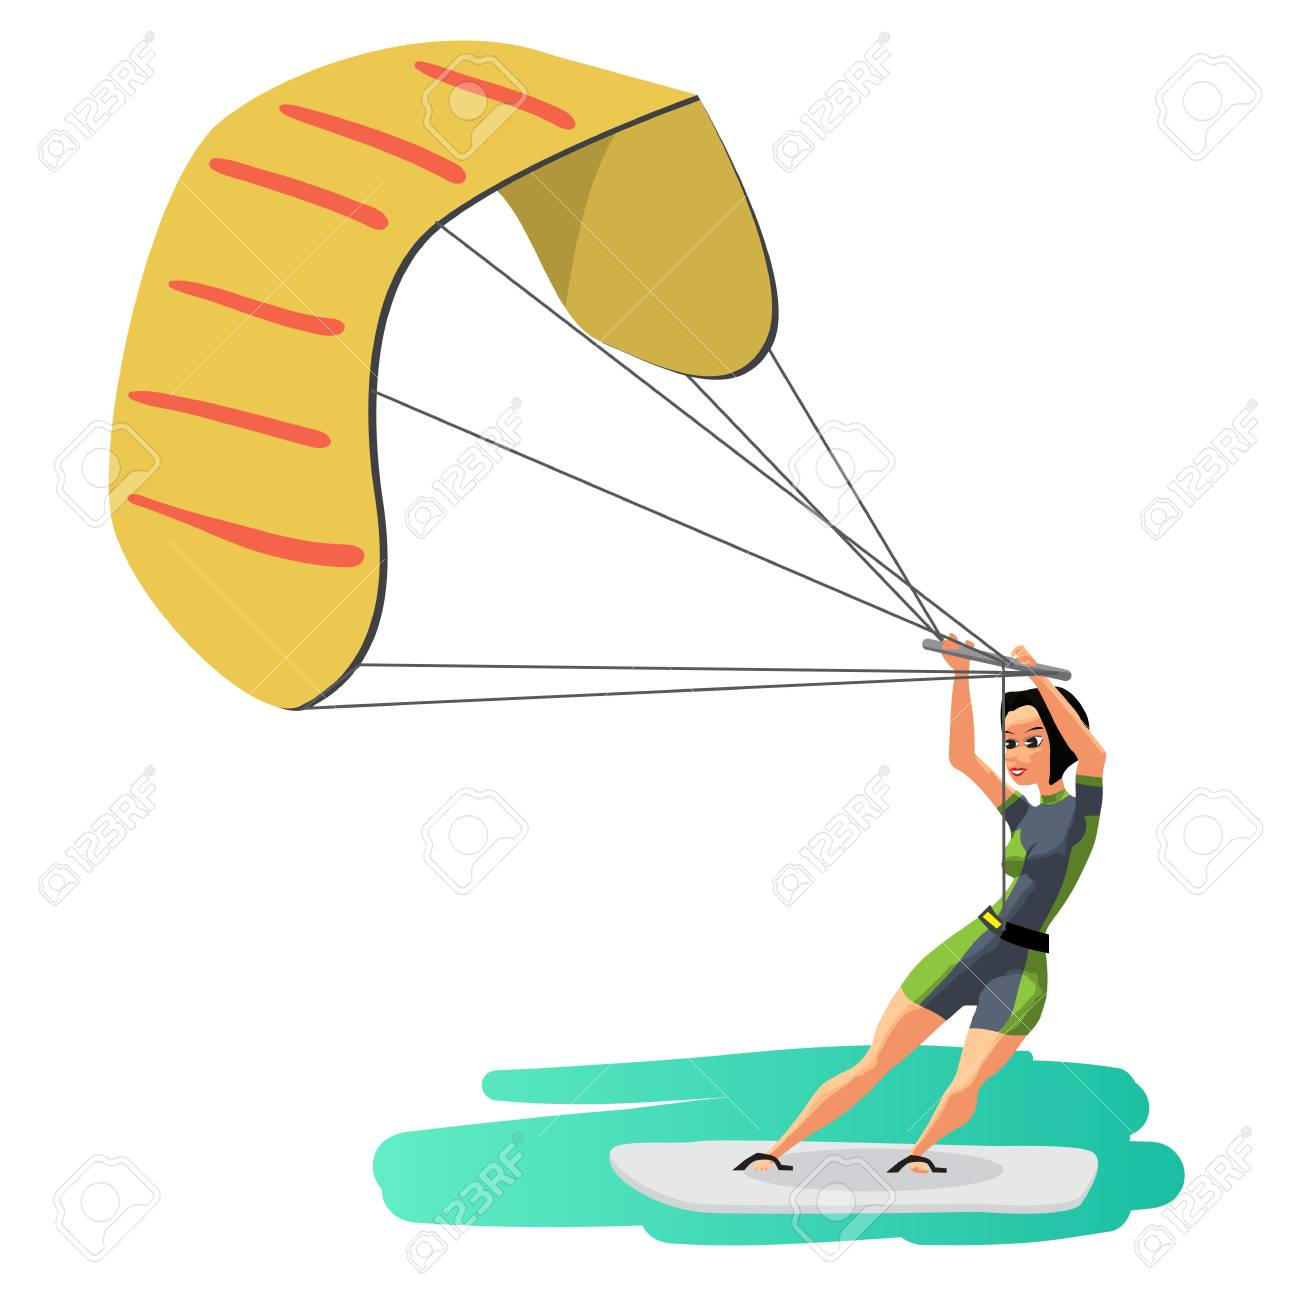 Woman Drive At Kite Surfing Girl Windsurfing On Water Surface With Air Kite Vector Flat Cartoon Illustration On A Isolated Background Royalty Free Cliparts Vetores E Ilustracoes Stock Image 76960673